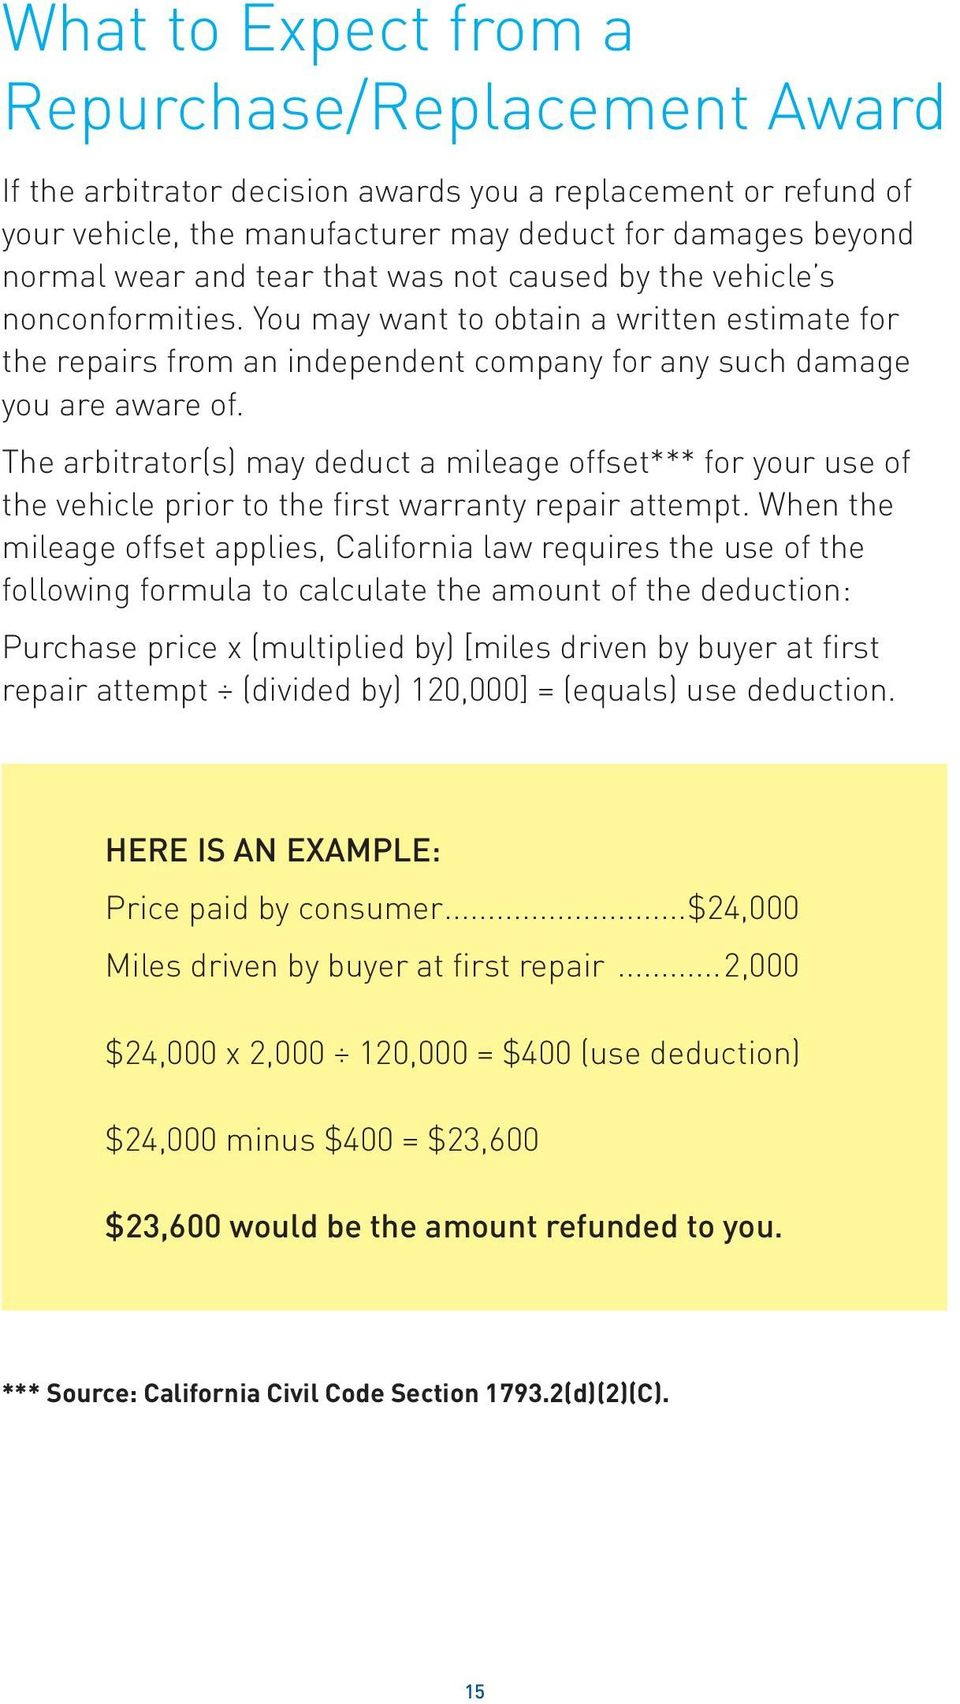 The arbitrator(s) may deduct a mileage offset*** for your use of the vehicle prior to the first warranty repair attempt.